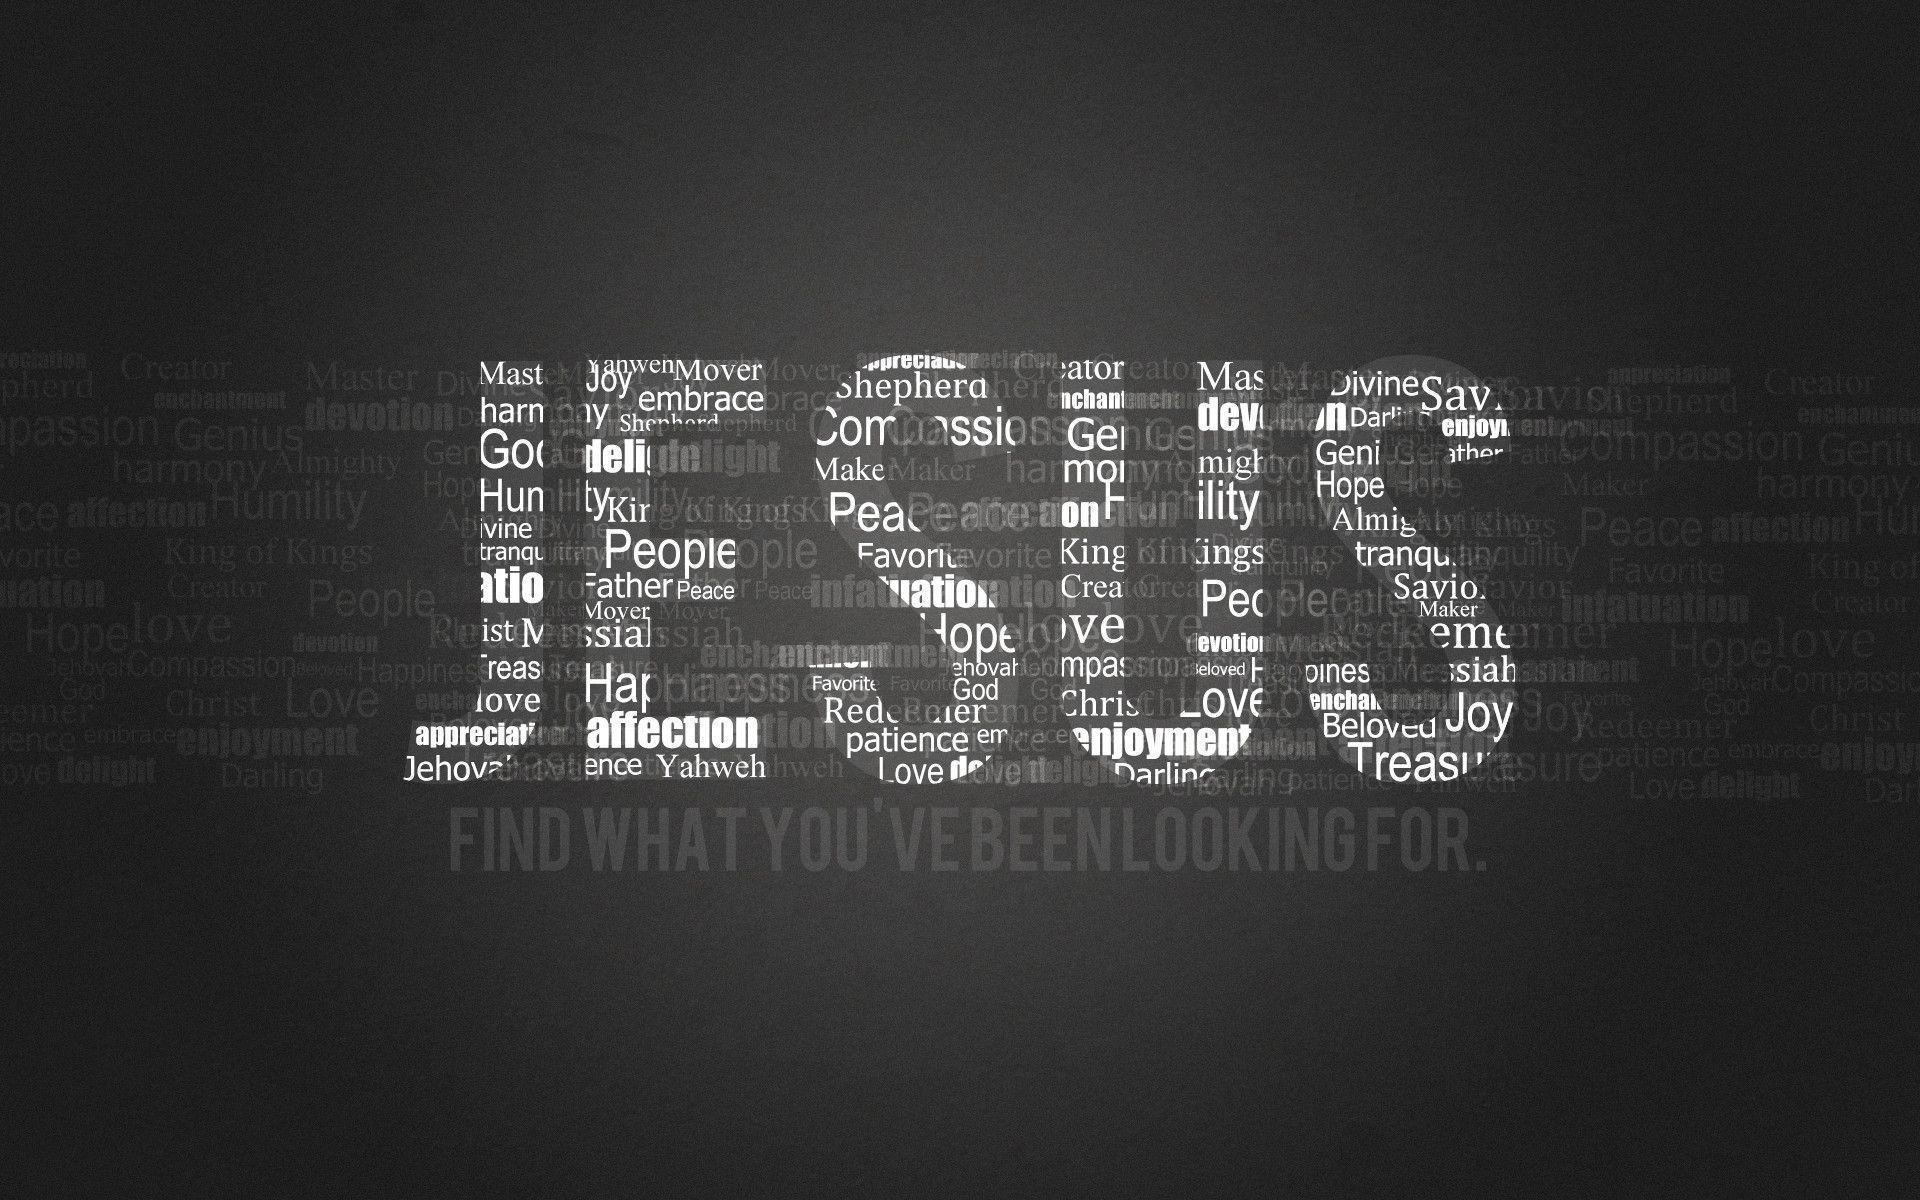 I Love Jesus Wallpaper Desktop : Jesus HD Wallpapers - Wallpaper cave